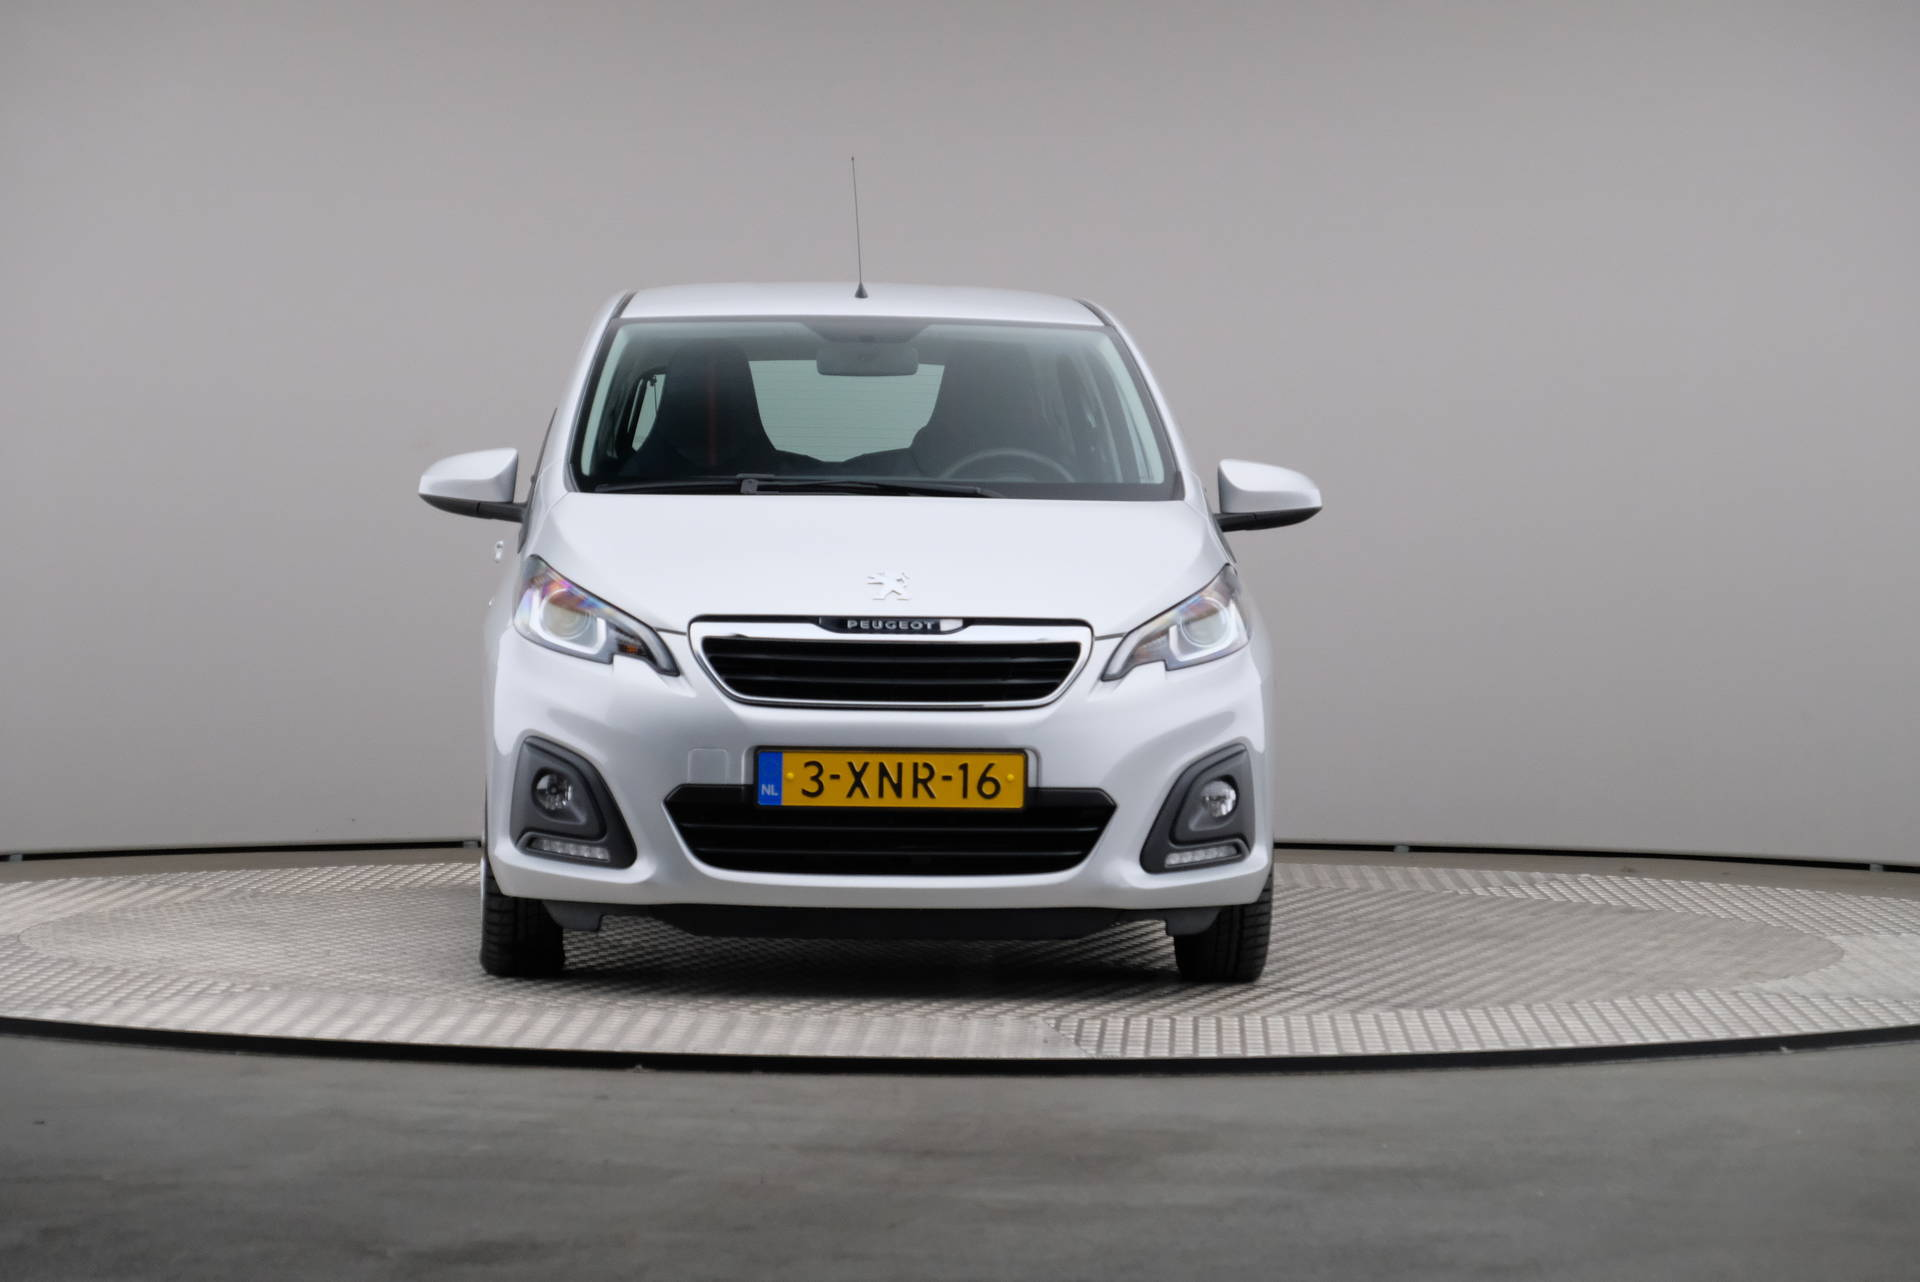 Peugeot 108 1.0 e-VTi Blue Lease, Airconditioning, 360-image32